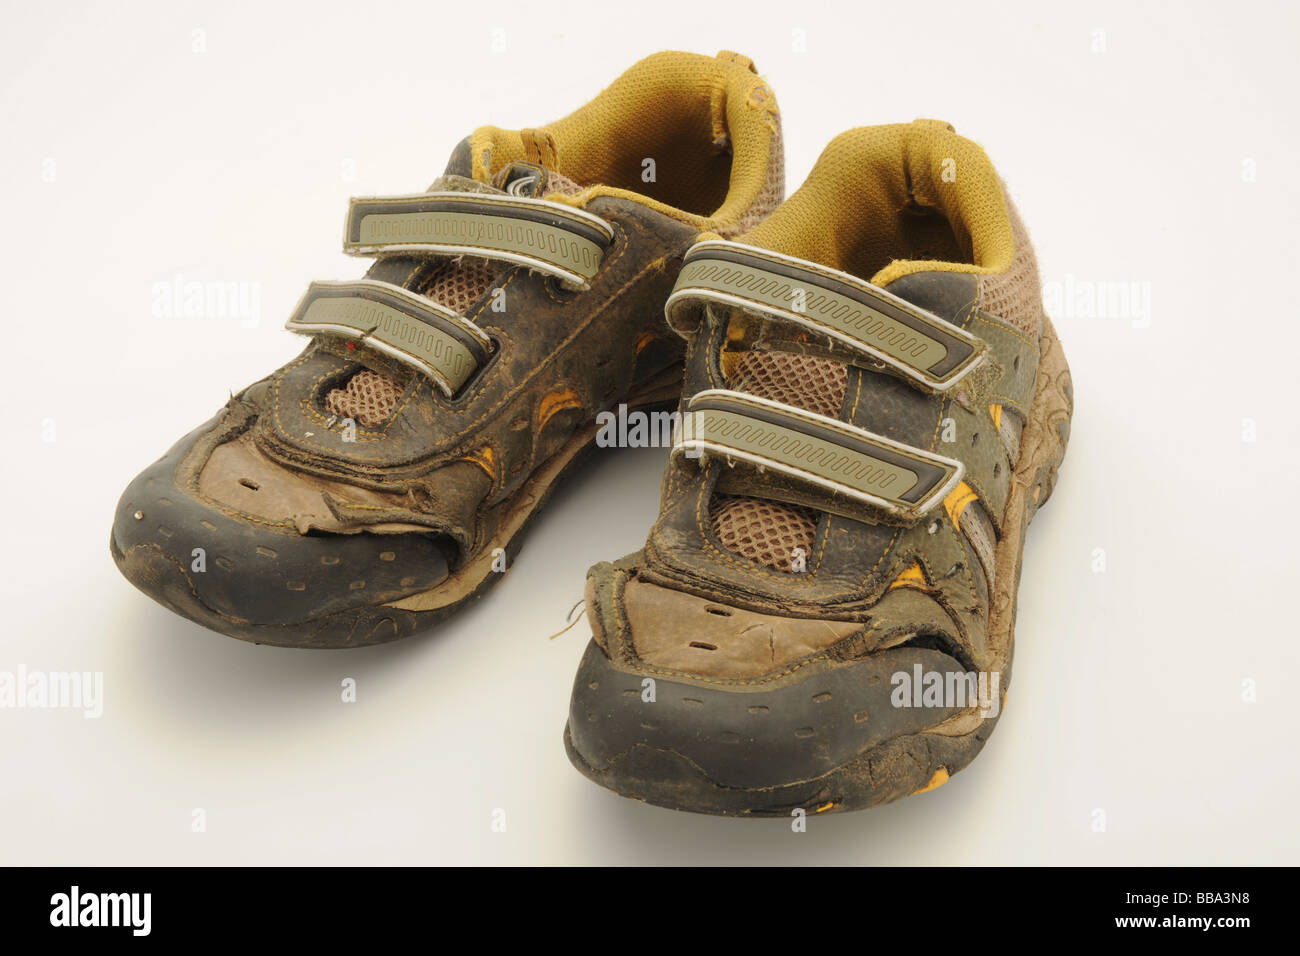 A pair children's worn out trainers - Stock Image